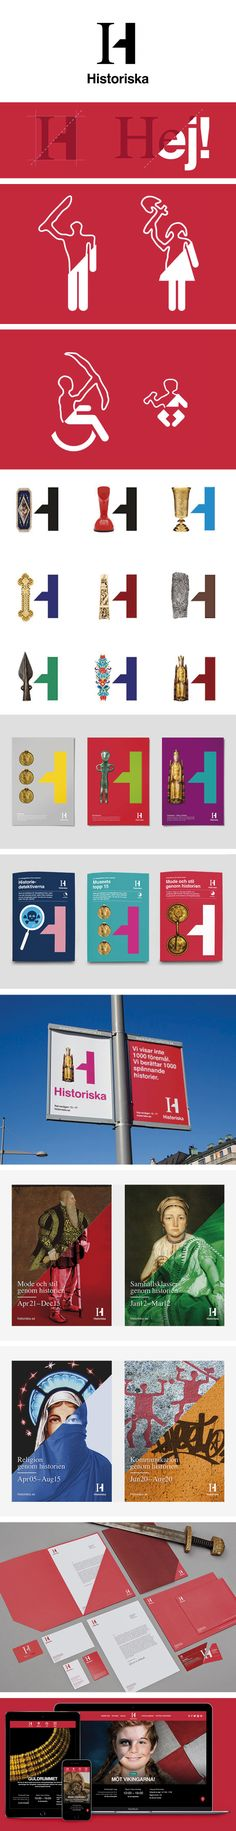 More corporate-designs are collected on: https://pinterest.com/rothenhaeusler/best-of-corporate-design/ · Agency: Bold · Client:  Historiska · Source: http://www.boldscandinavia.com/work/the-swedish-history-museum/ #branding #identity #corporatedesign